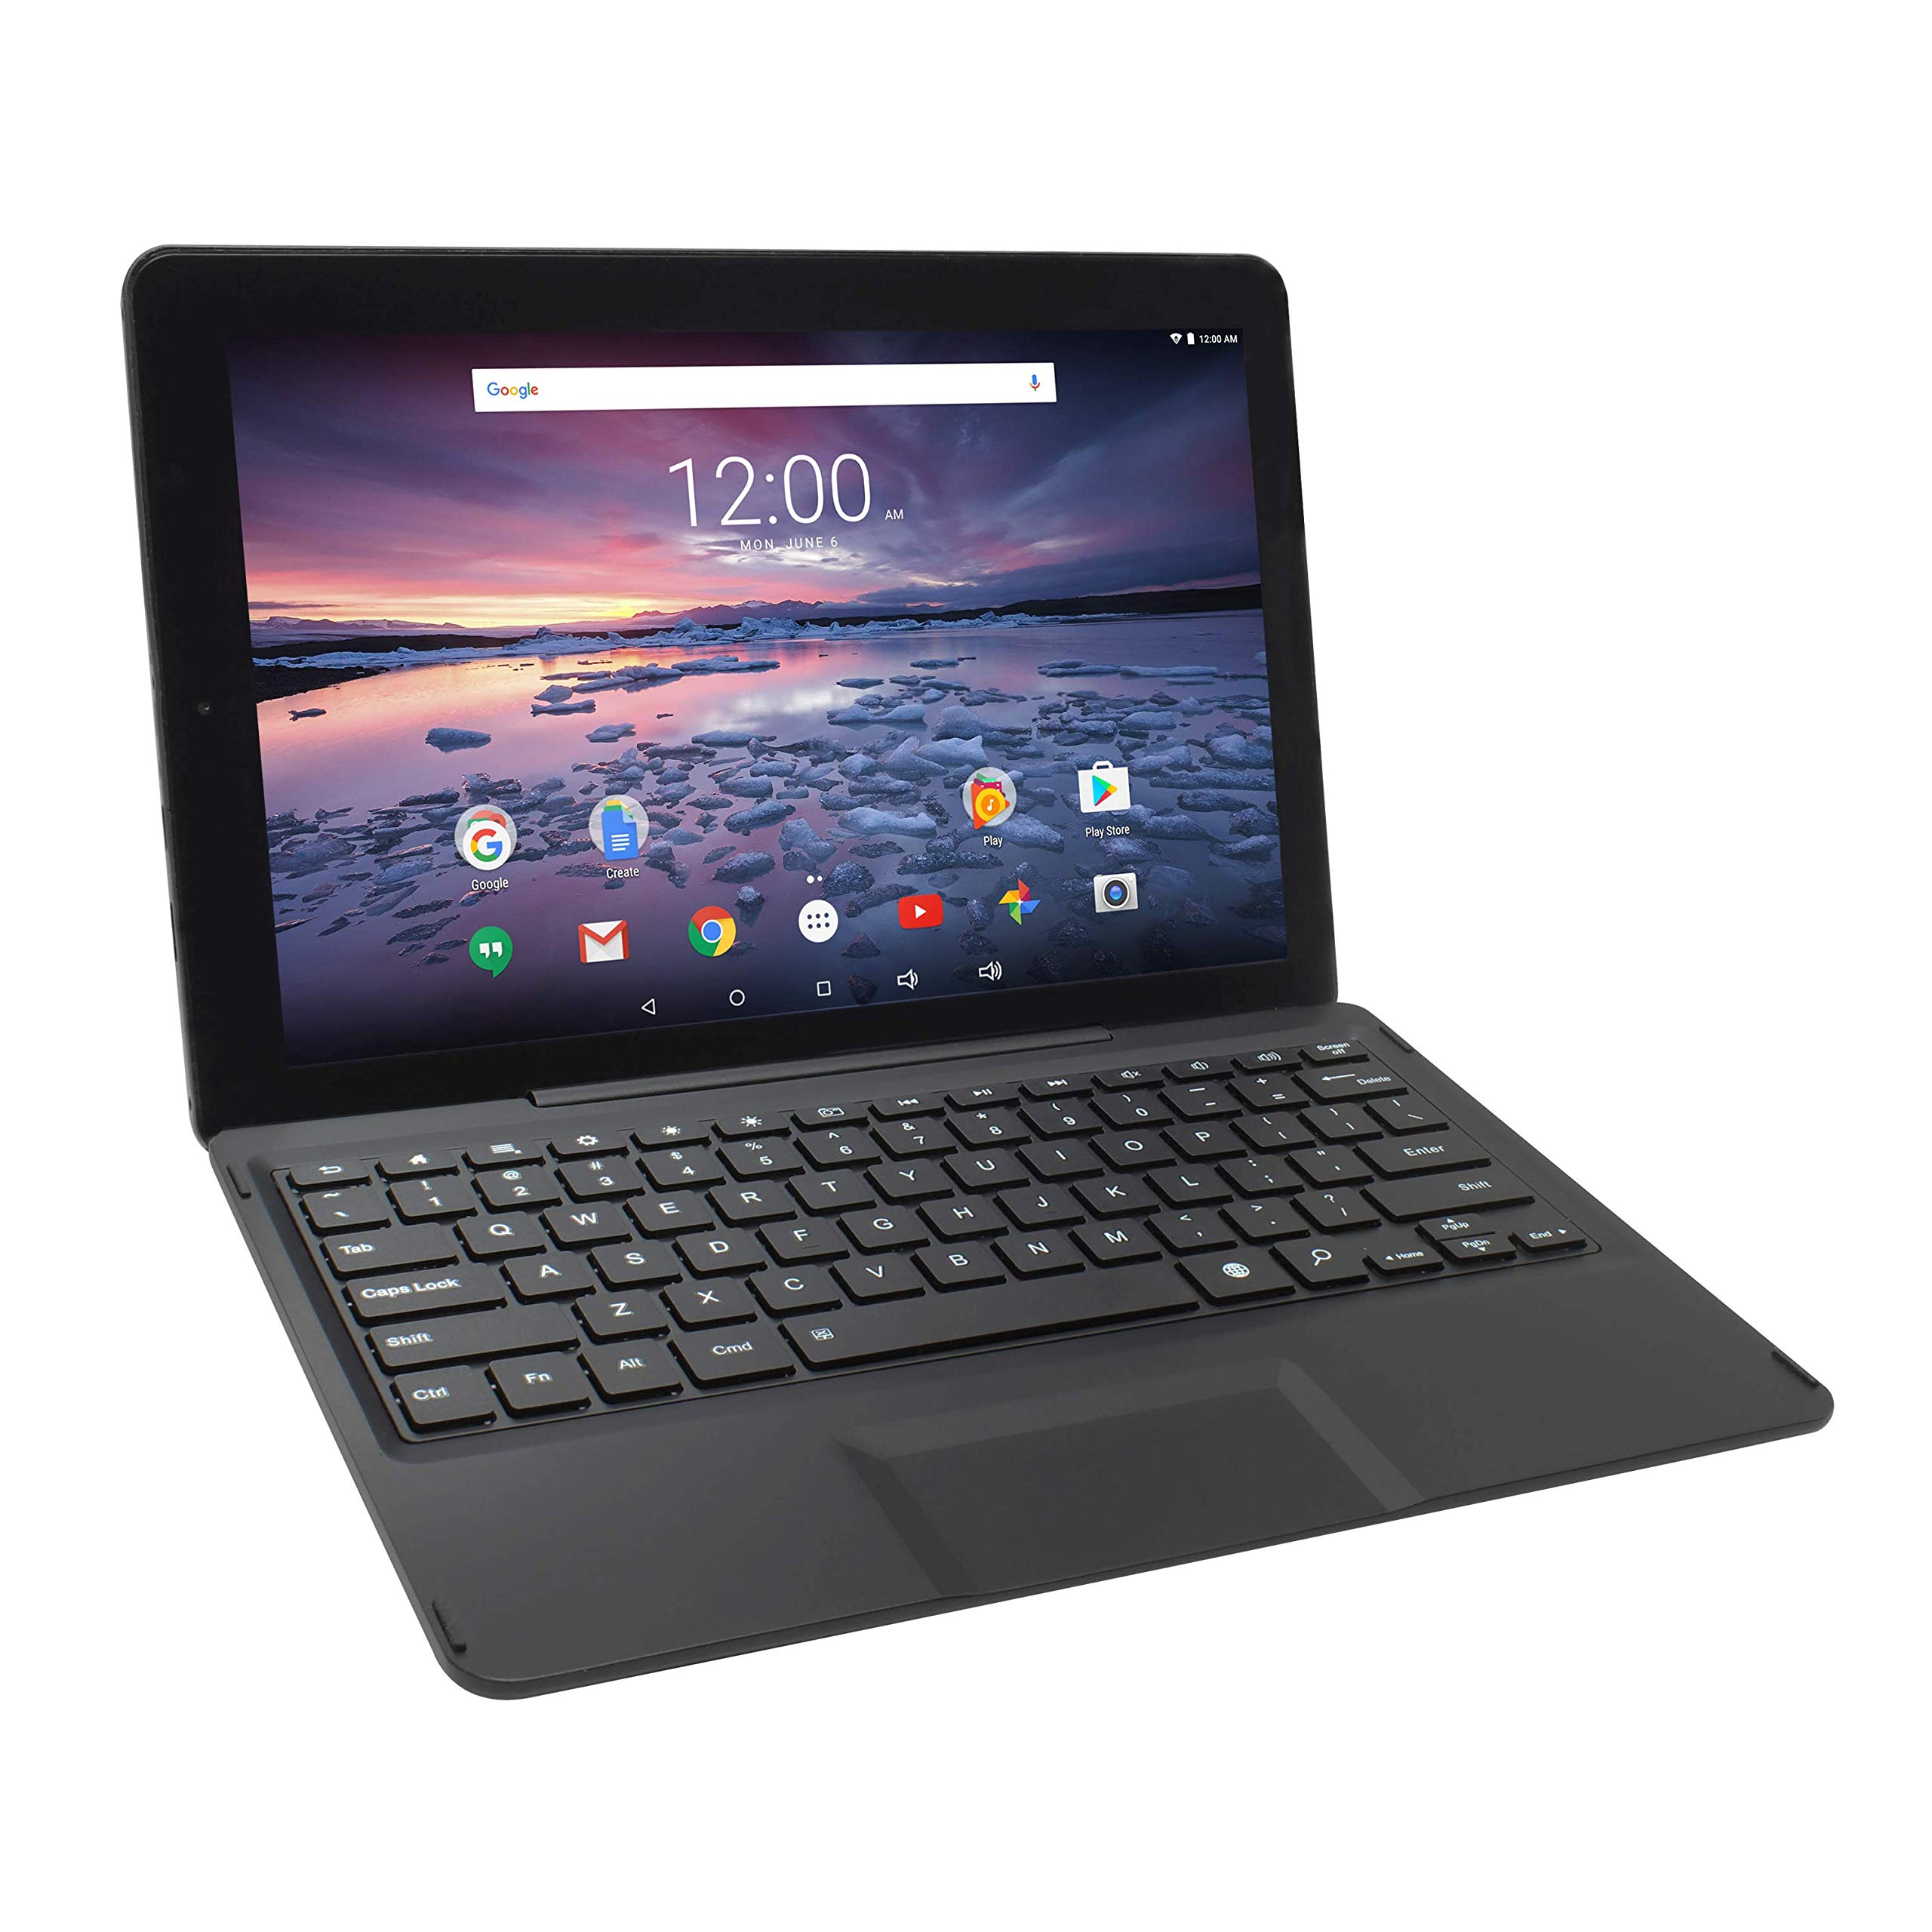 RCA 12.2 Inch Android Tablet Quad Core 2G RAM 64G IPS 1920 x 1200 Touchscreen WiFi with Detachable Keyboard